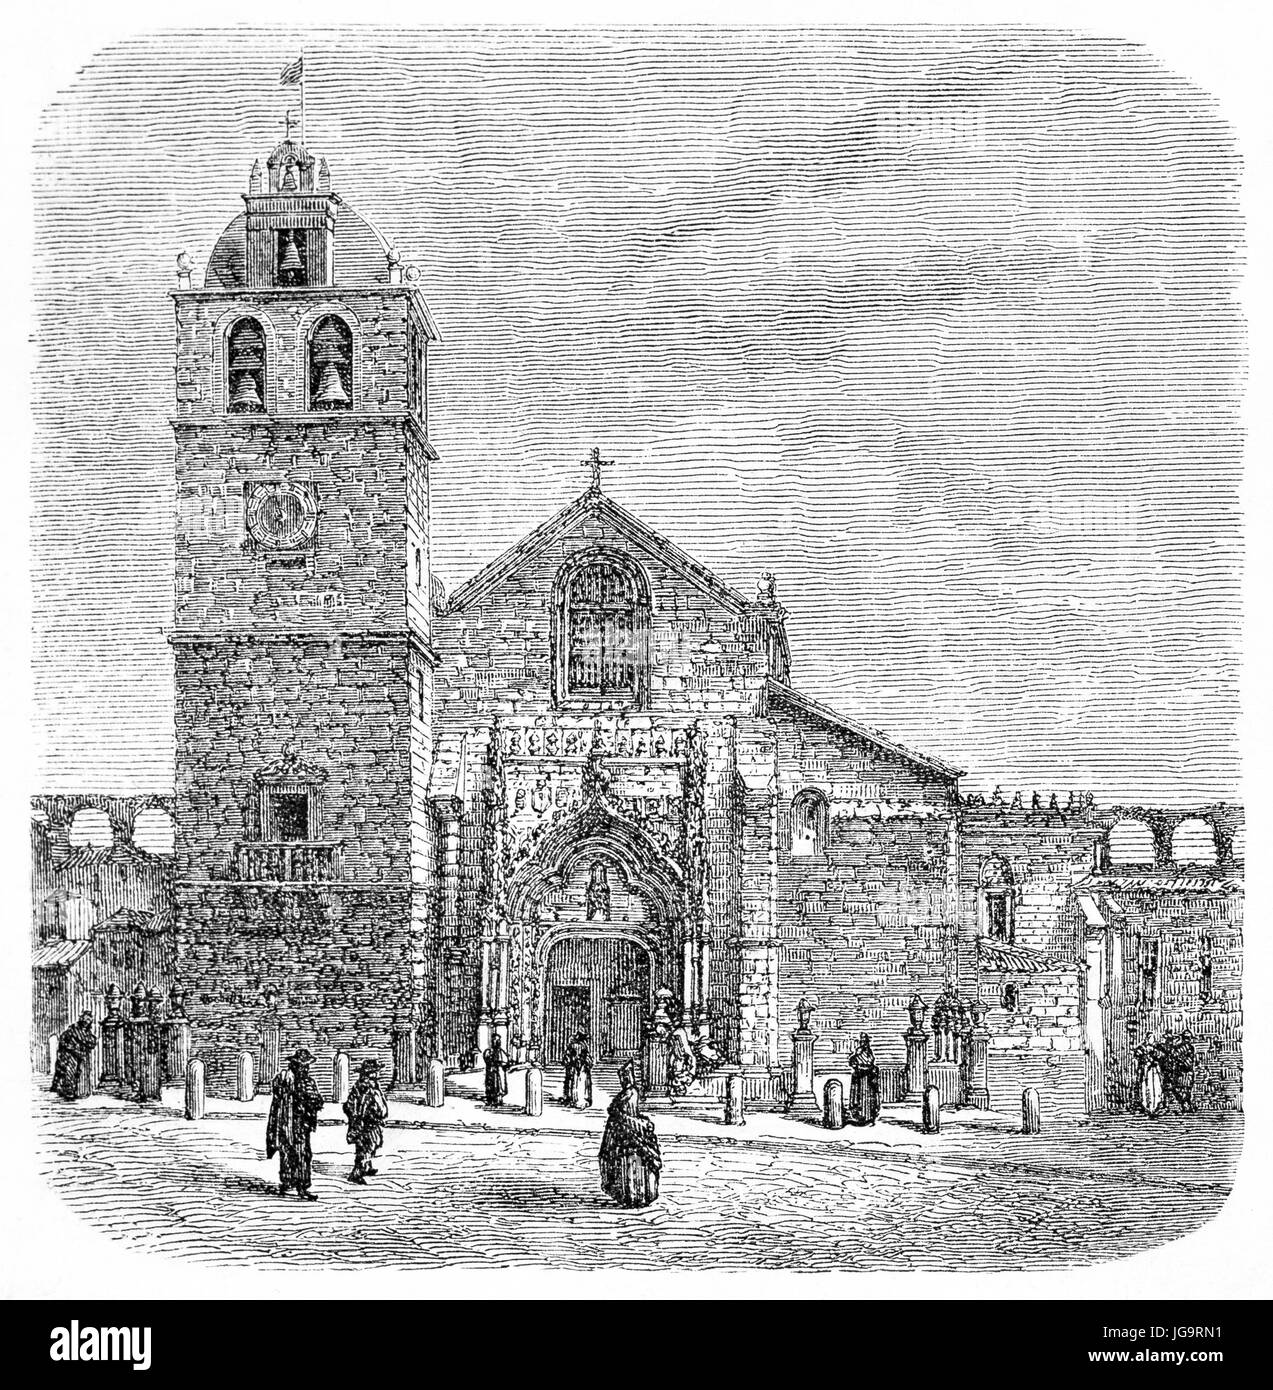 Old view of Matriz church in Vila do Conde, northern Portugal. Created by Catenacci after photo by Scabra, published - Stock Image